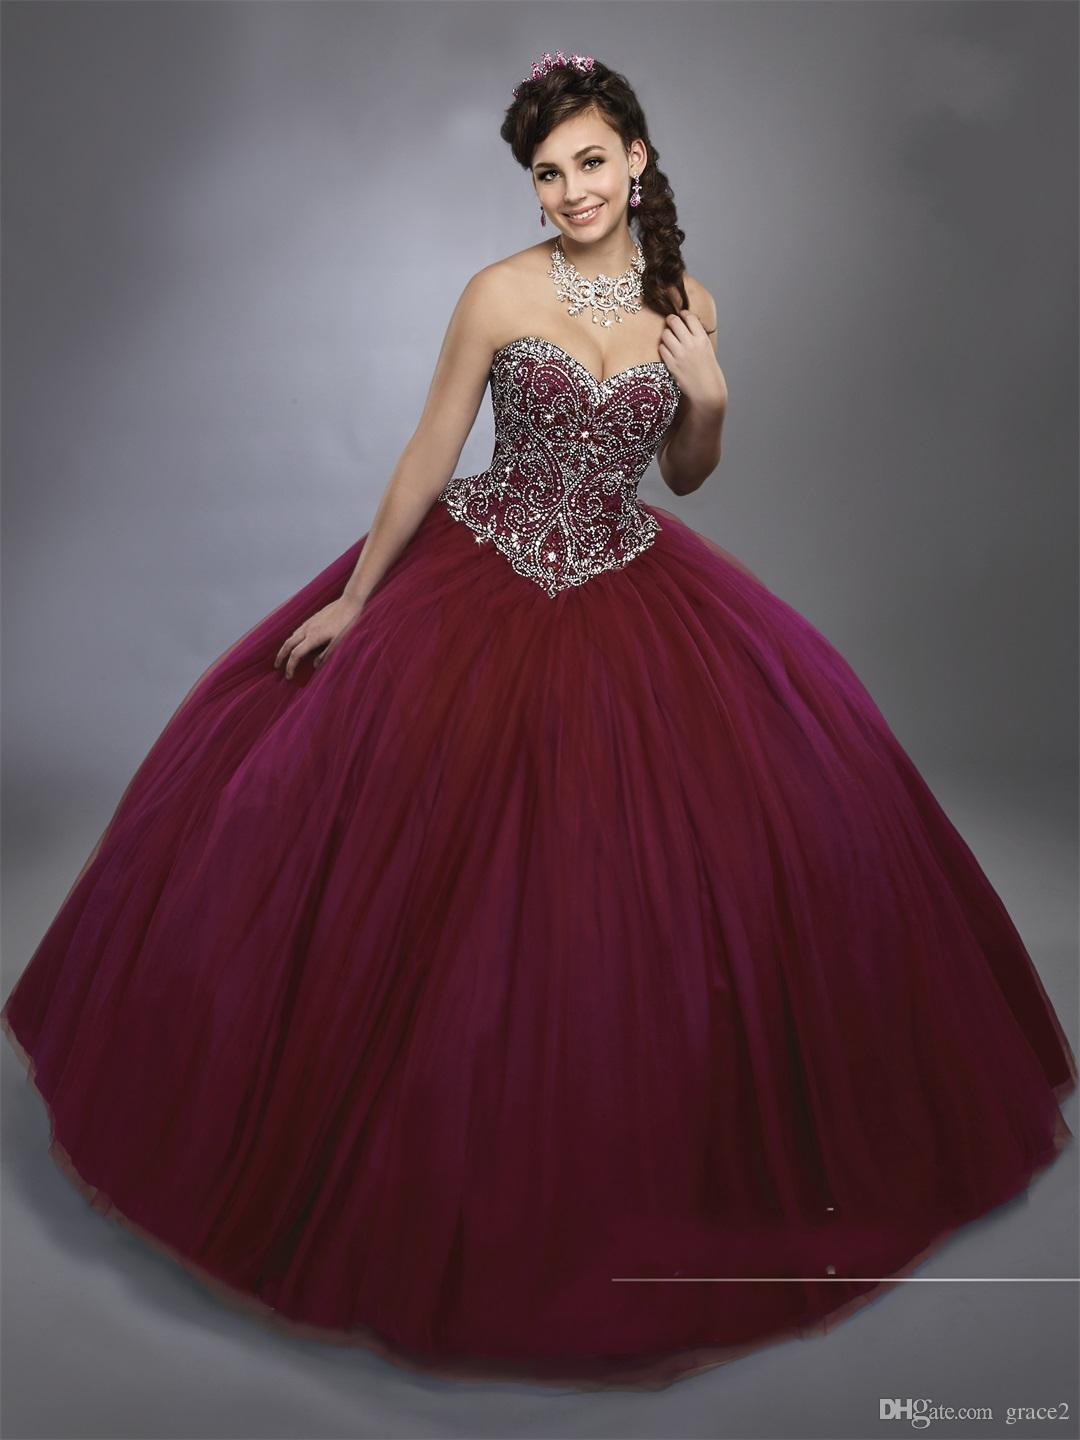 Dark Burgundy Ball Gown Quinceanera Dresses Mary's with Sheer Bolero Corset Back Bling Bling Crystaled Sweet 15 Dress Sweetheart